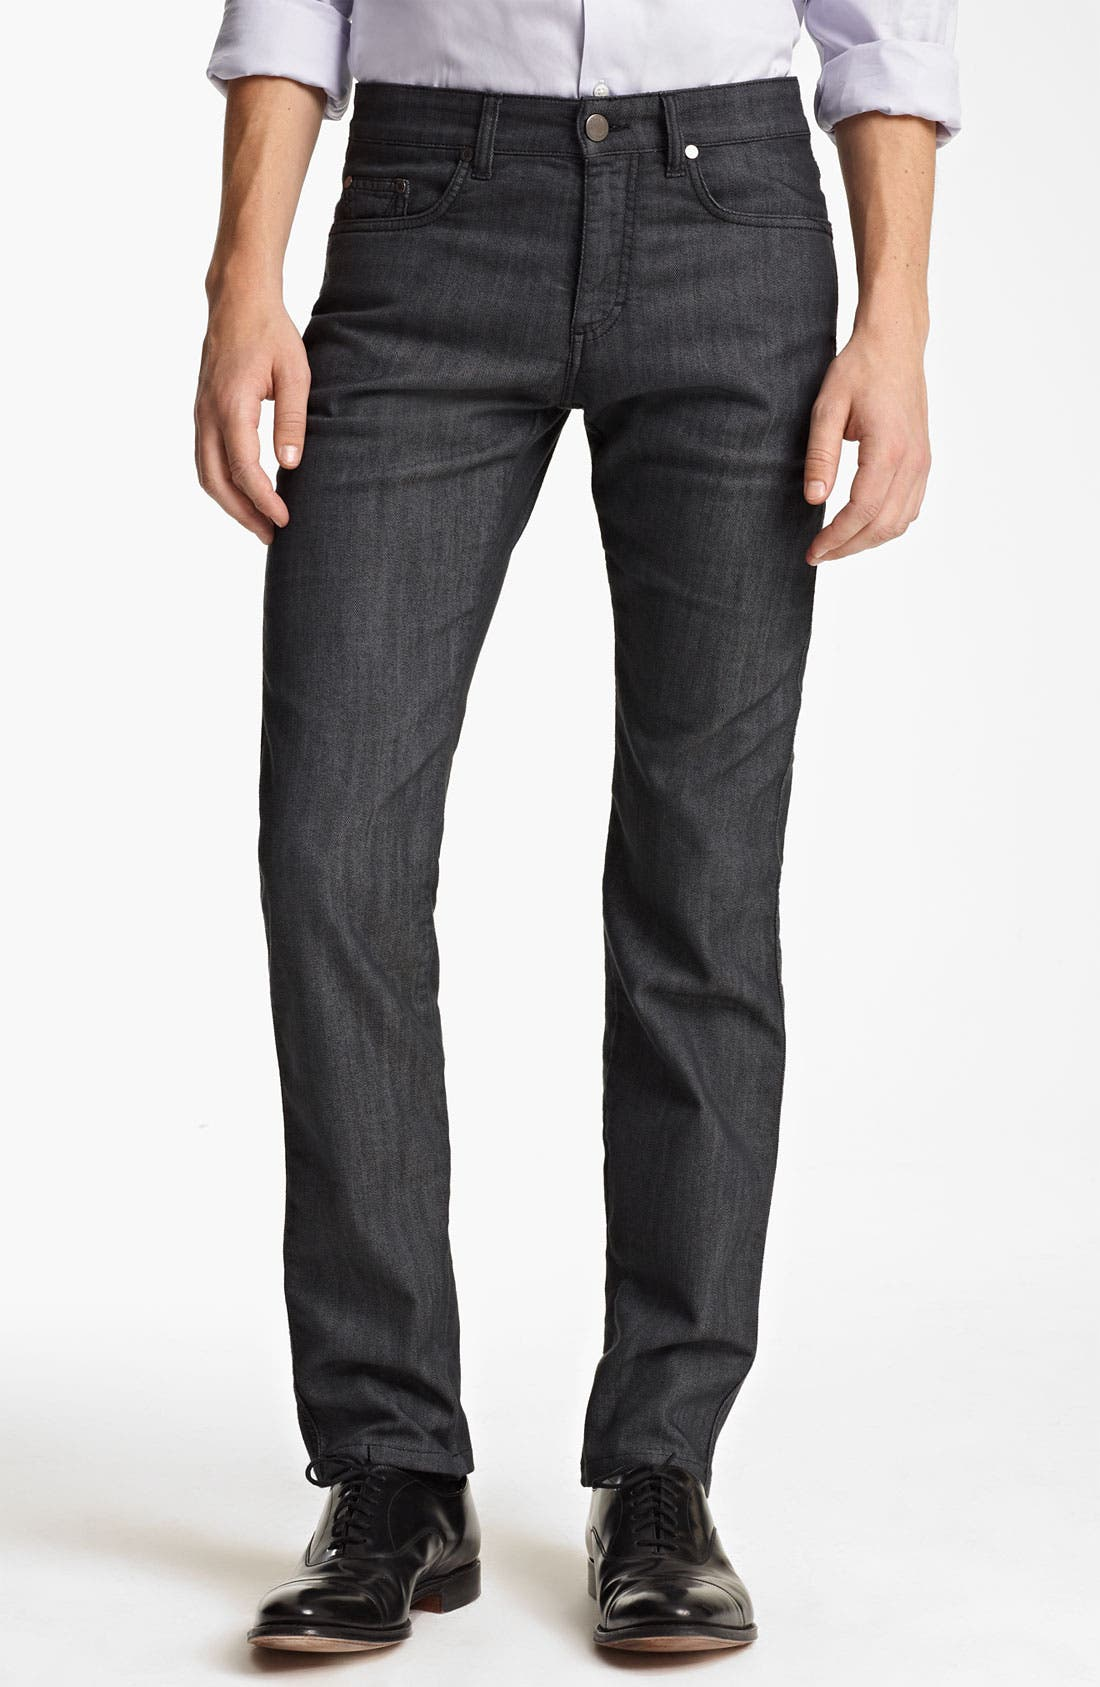 Alternate Image 1 Selected - Z Zegna Straight Leg Jeans (Blue)